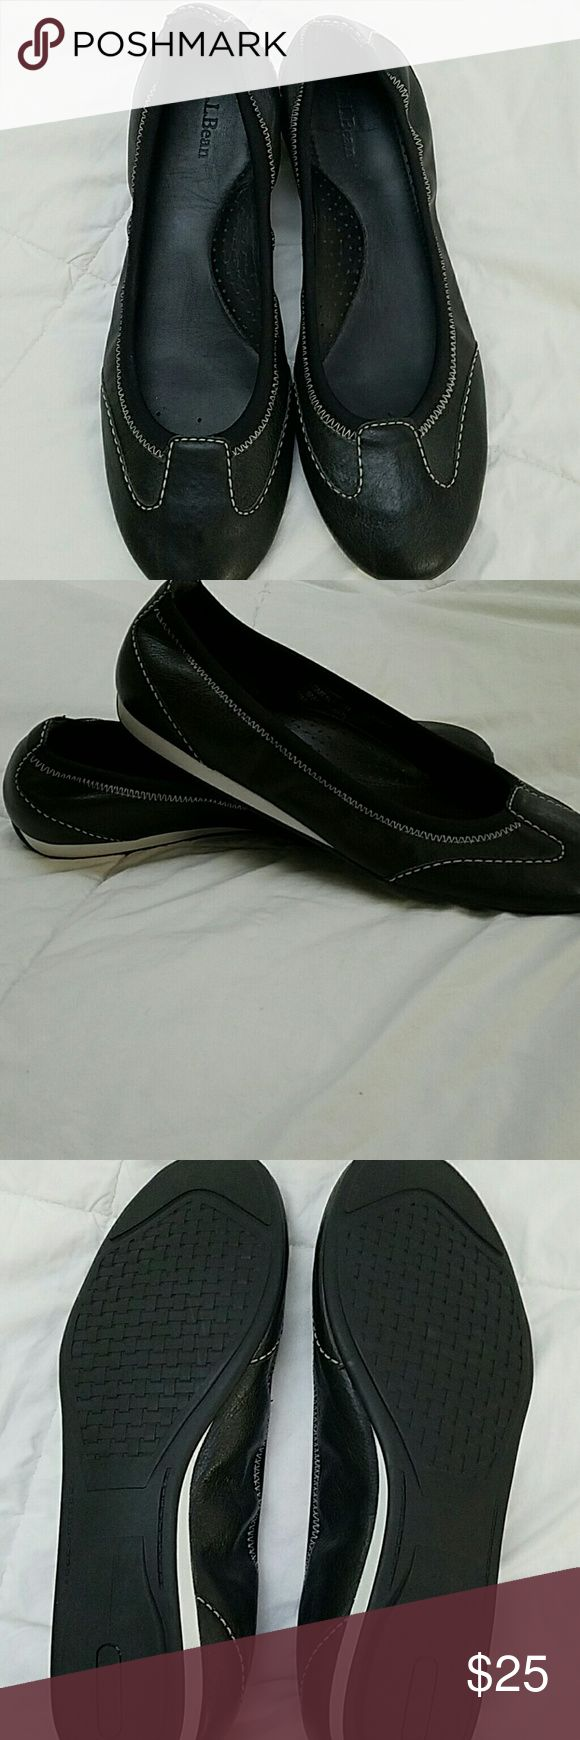 LL Bean Shoes Black leather LLBean Skimmers. Worn twice. LL Bean Shoes Flats & Loafers